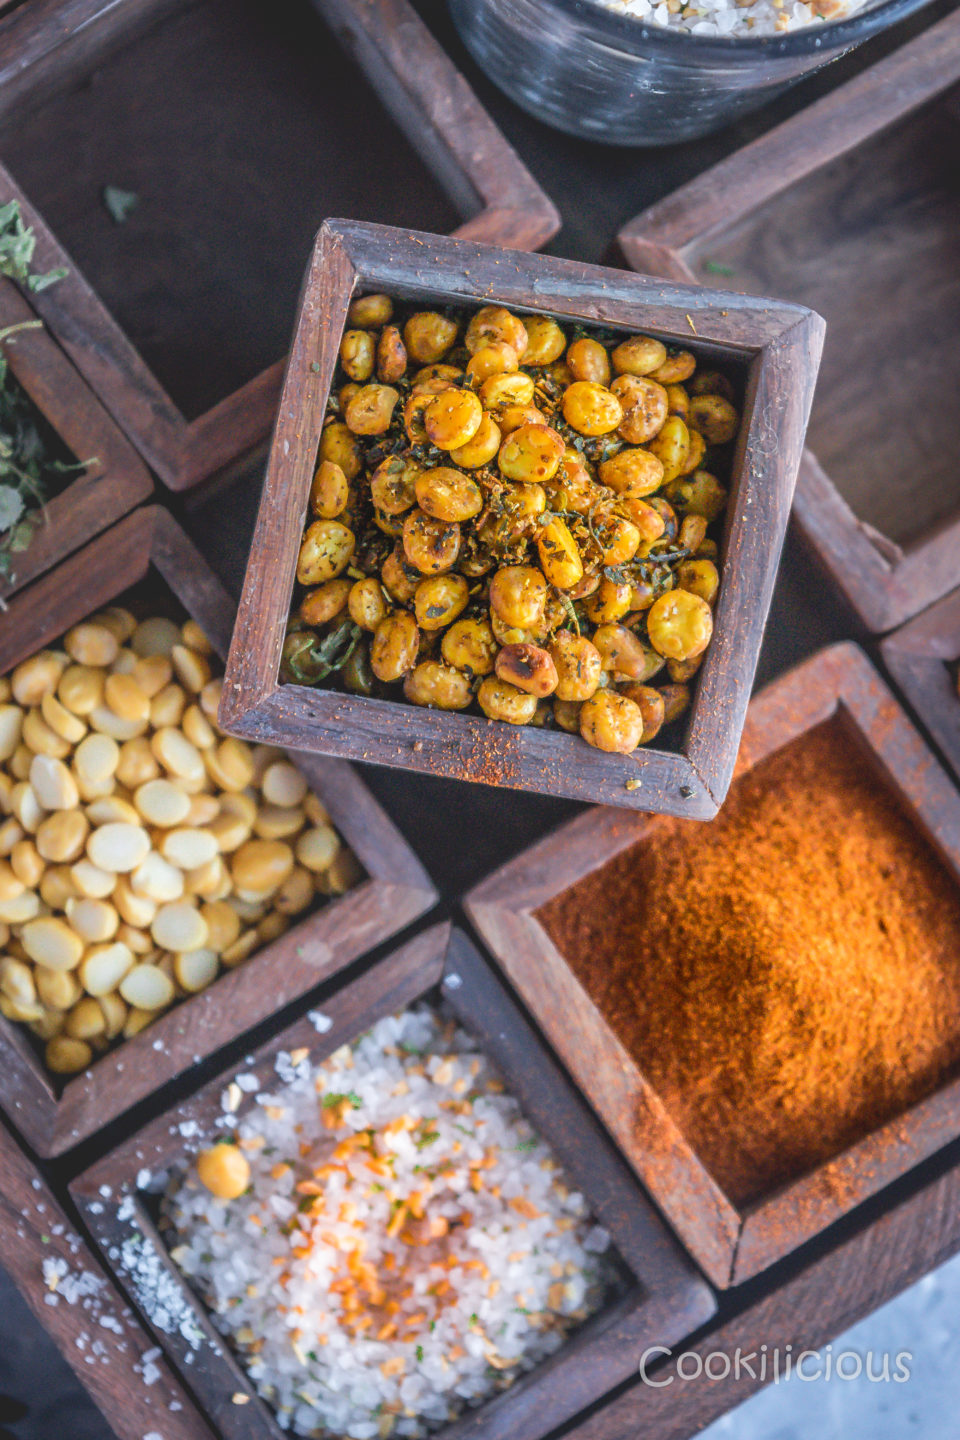 a box filled with Crispy Vegan Split Peas resting over a masala dabba